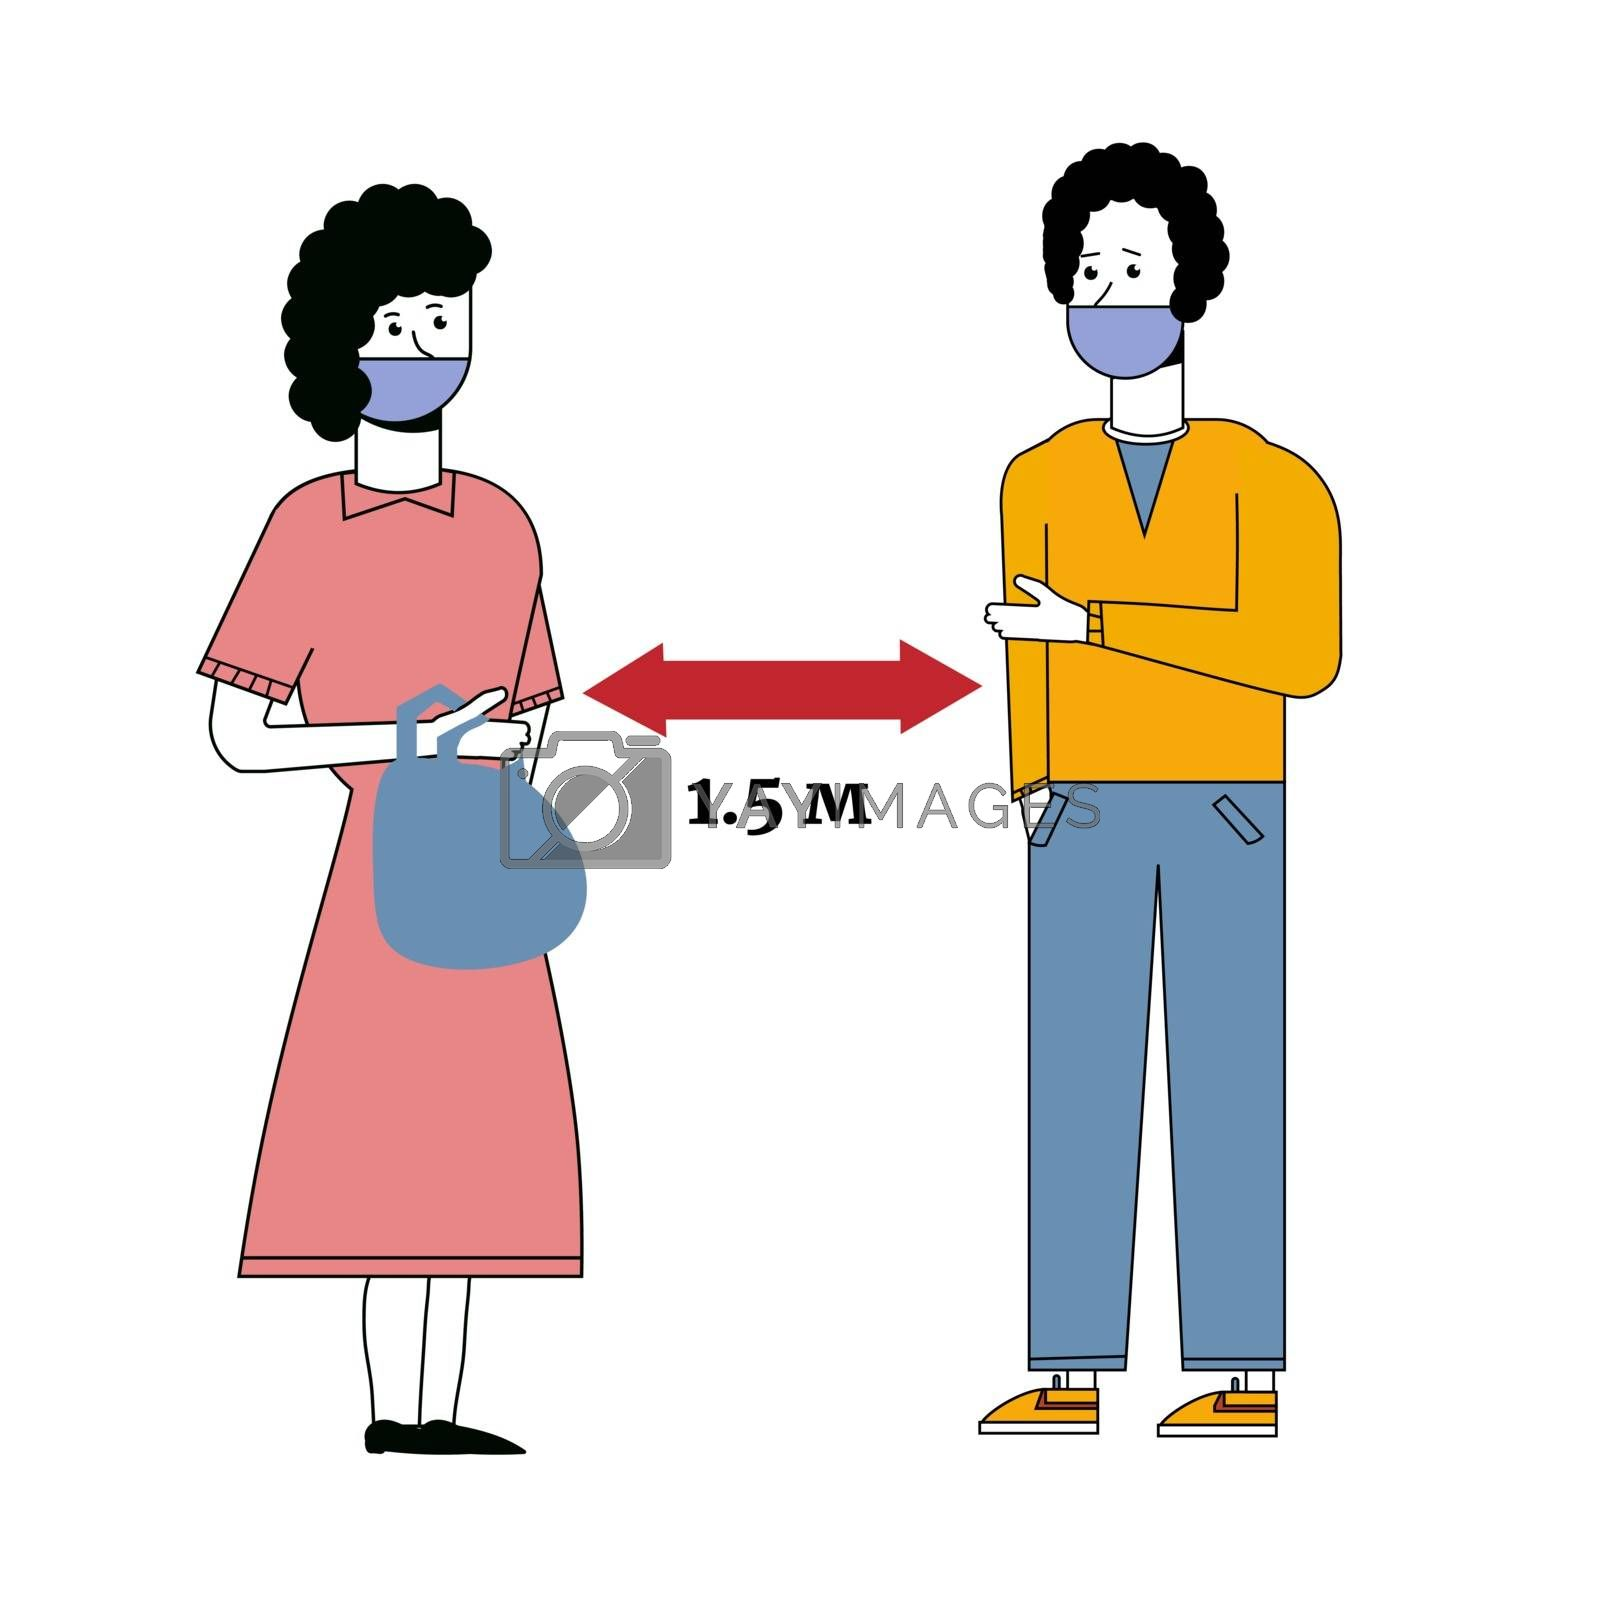 Social distancing greeting concept vector where two people avoid handshakes and keep their distance but their shadows almost touch to prevent spread of COVID-19.